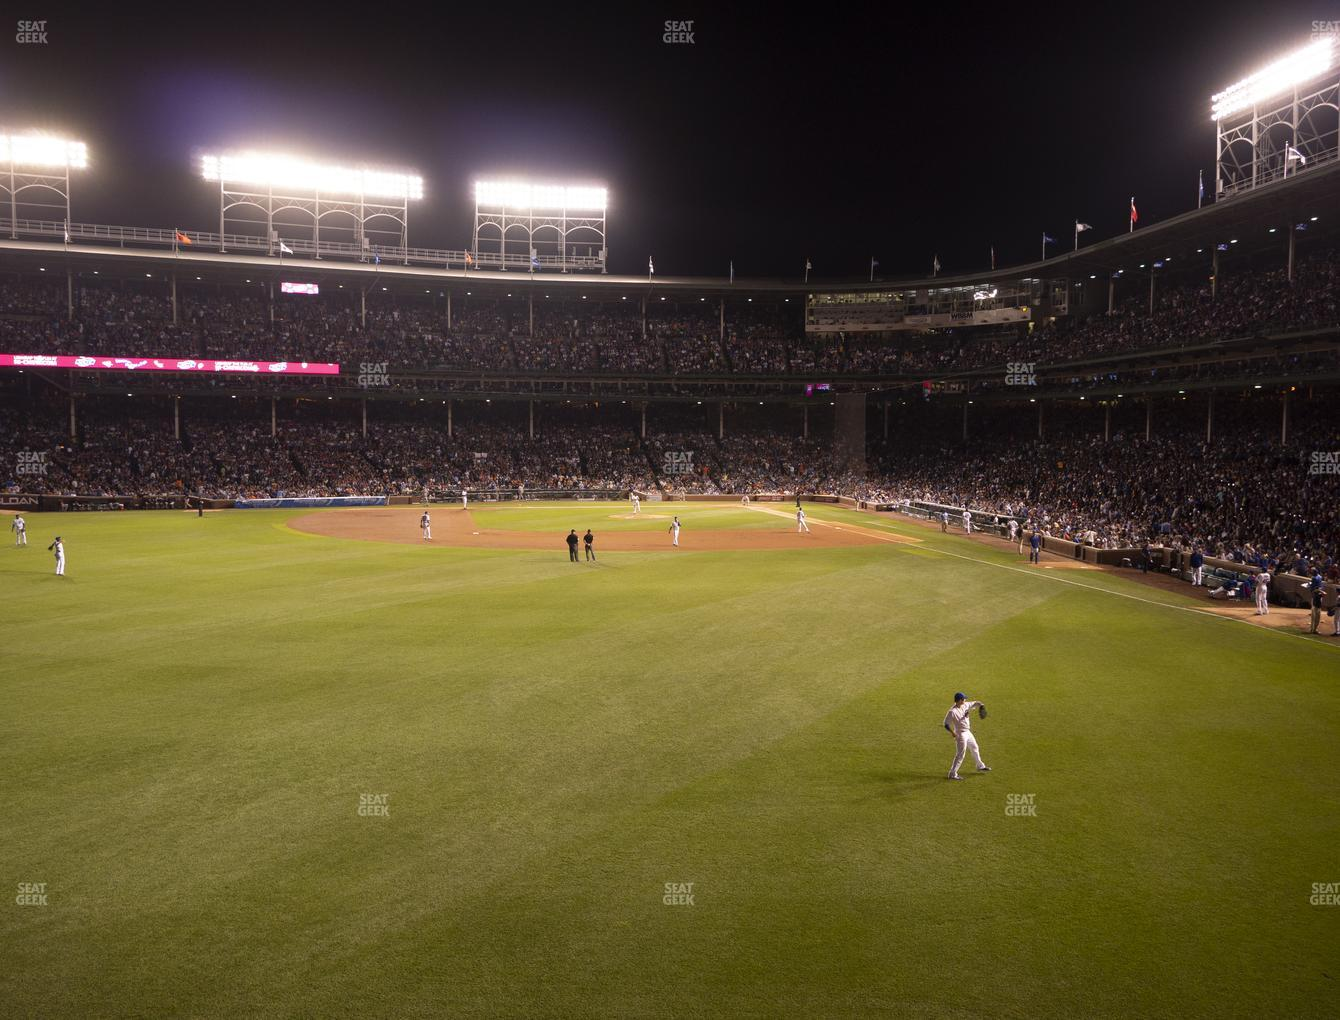 Chicago Cubs at Wrigley Field Budweiser Bleachers 502 View